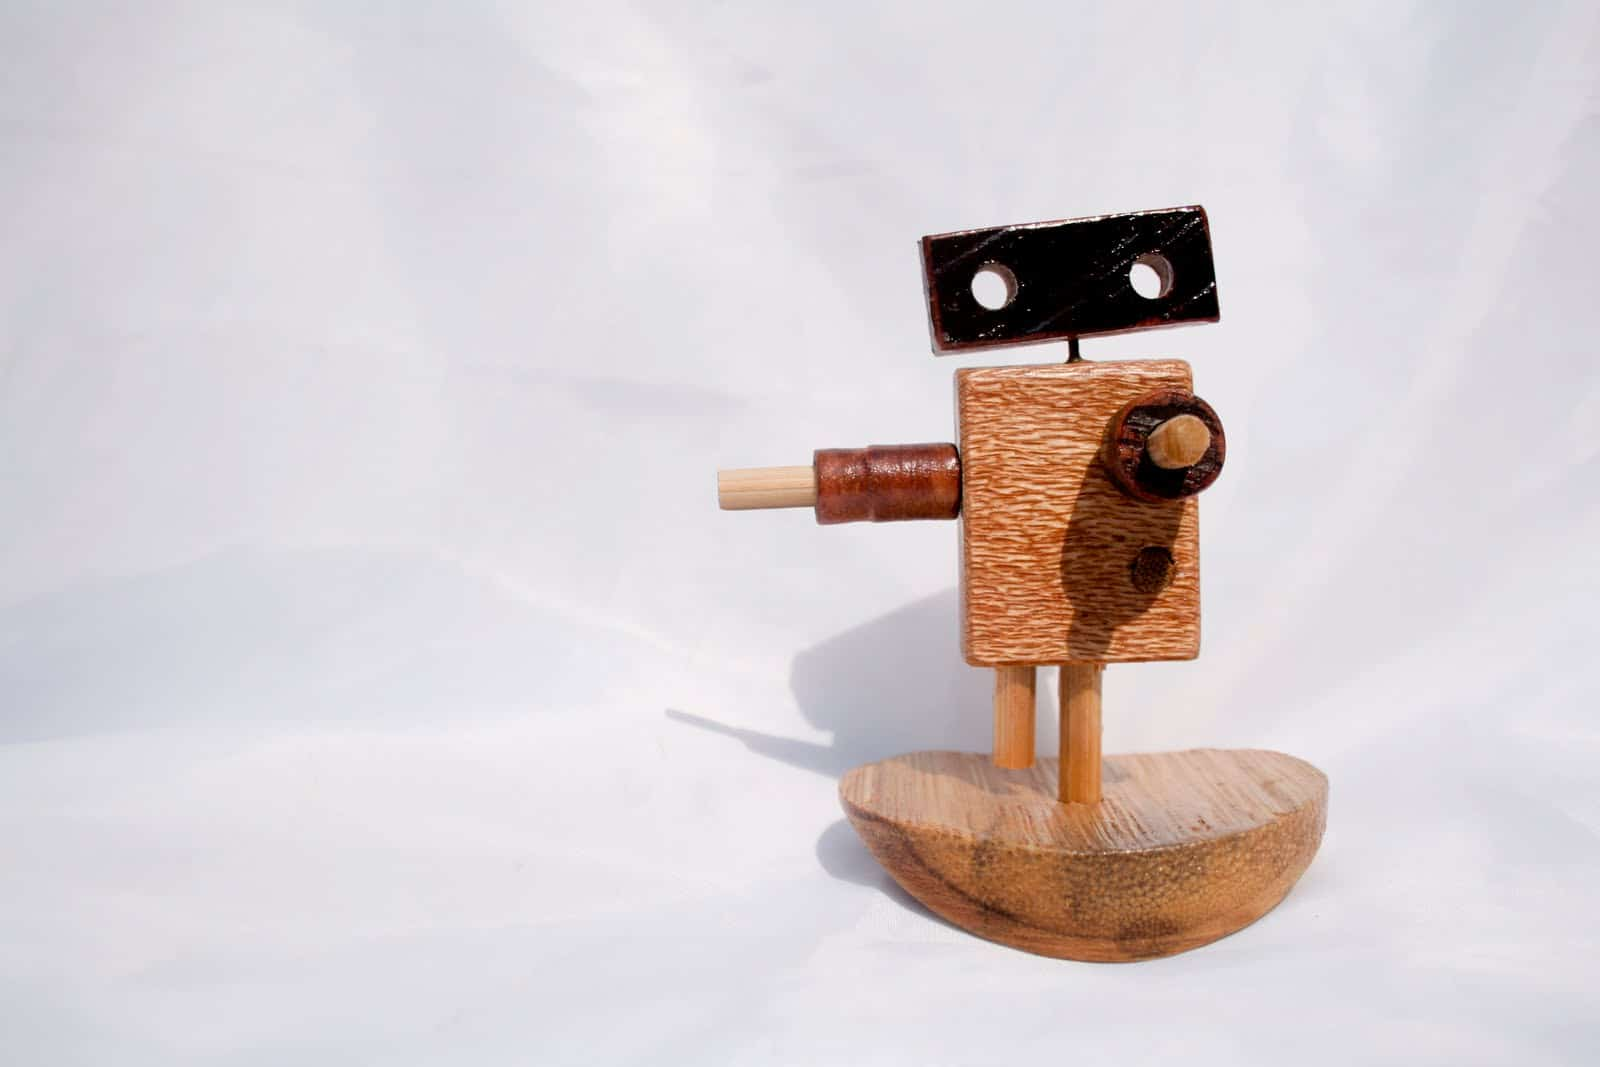 spare wood becomes stunningly cute wooden robots